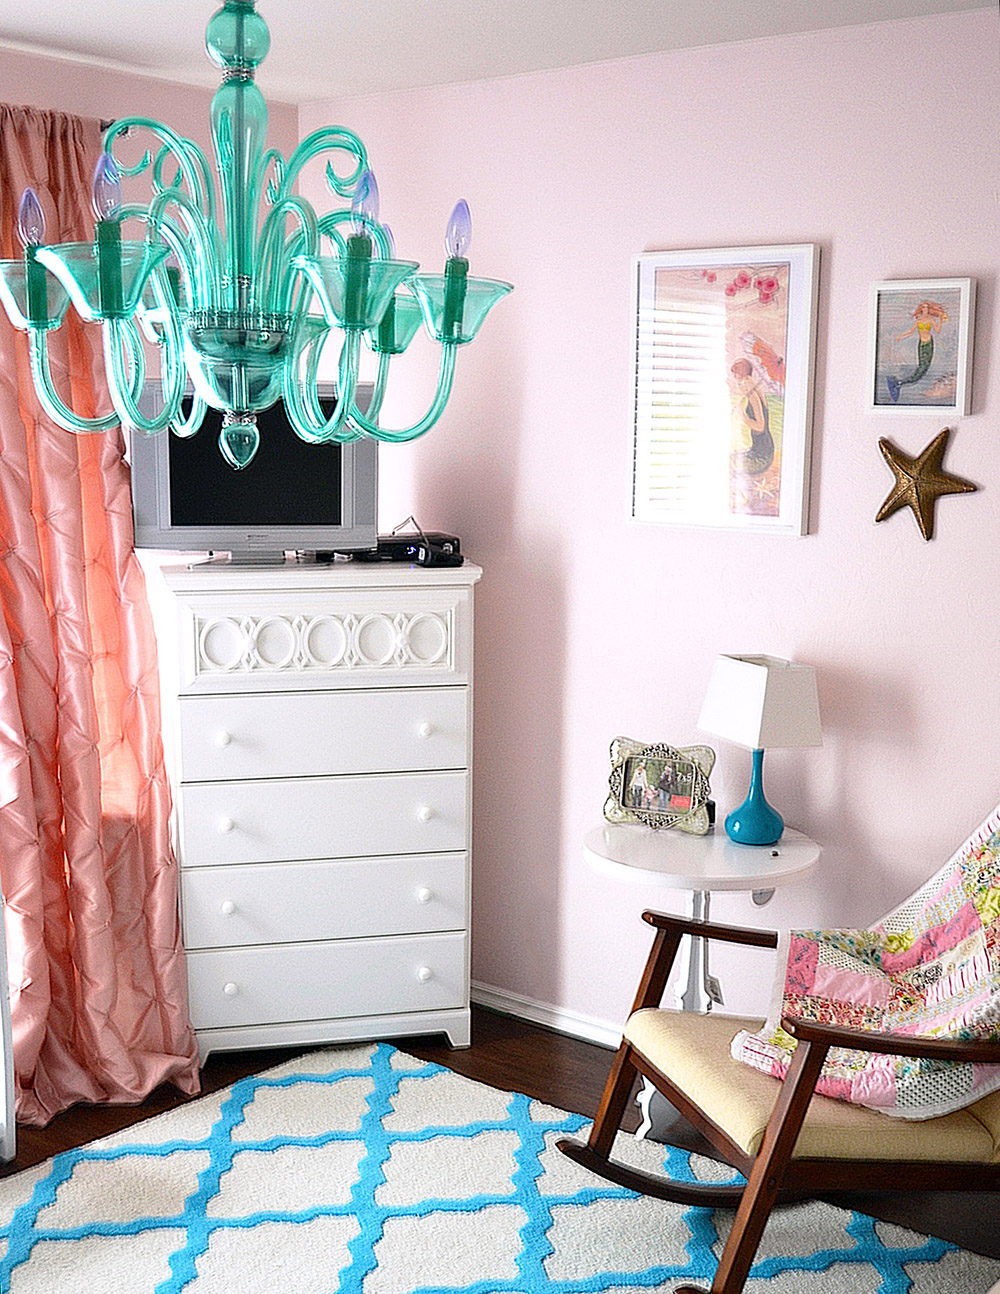 Stacy charlie pink and turquoise mermaid nursery 6282013 arubaitofo Image collections